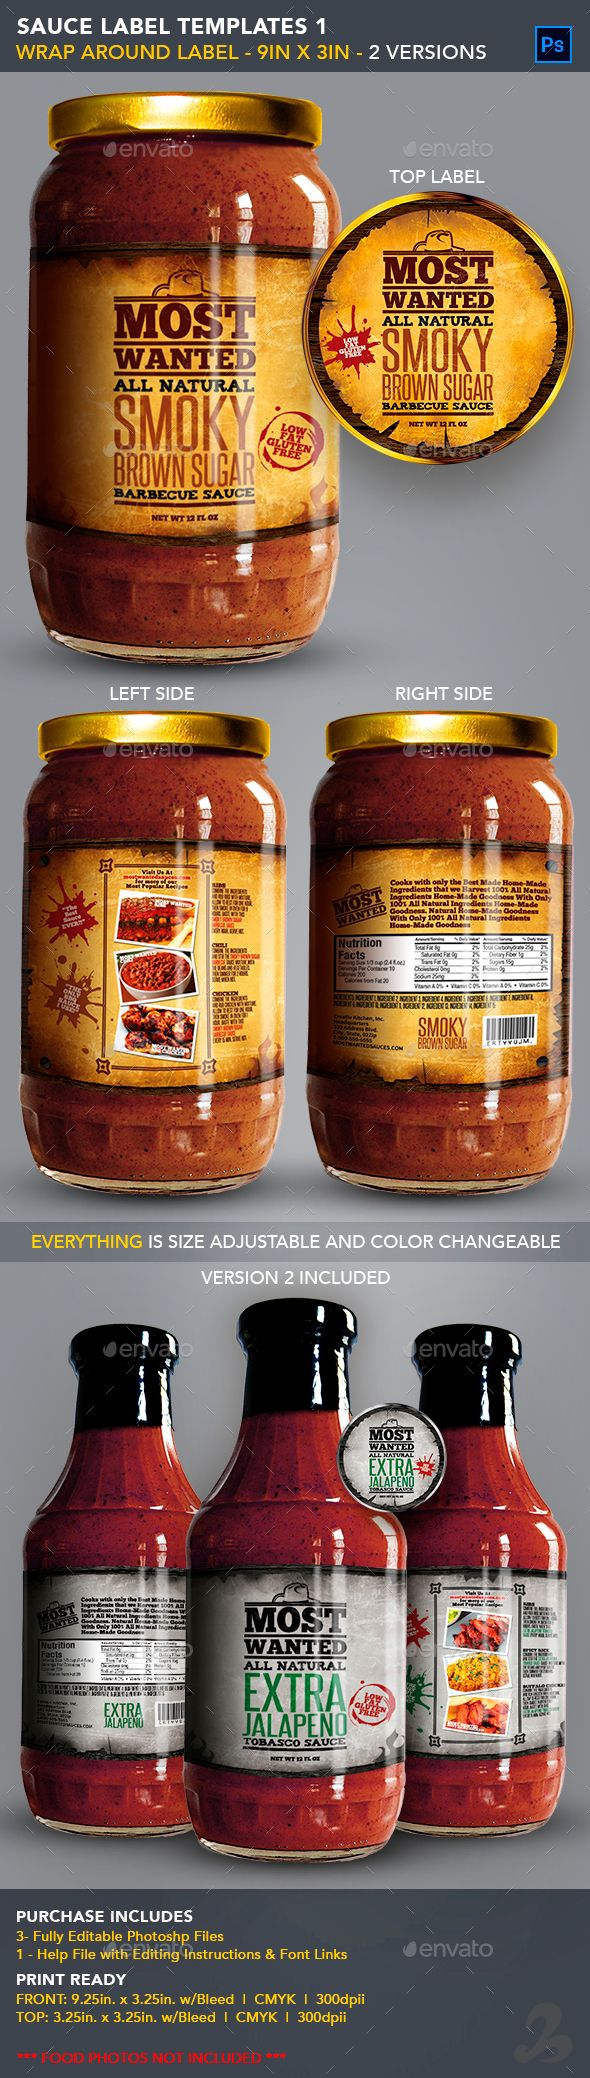 Pin By Best Graphic Design On Premium Packaging Templates